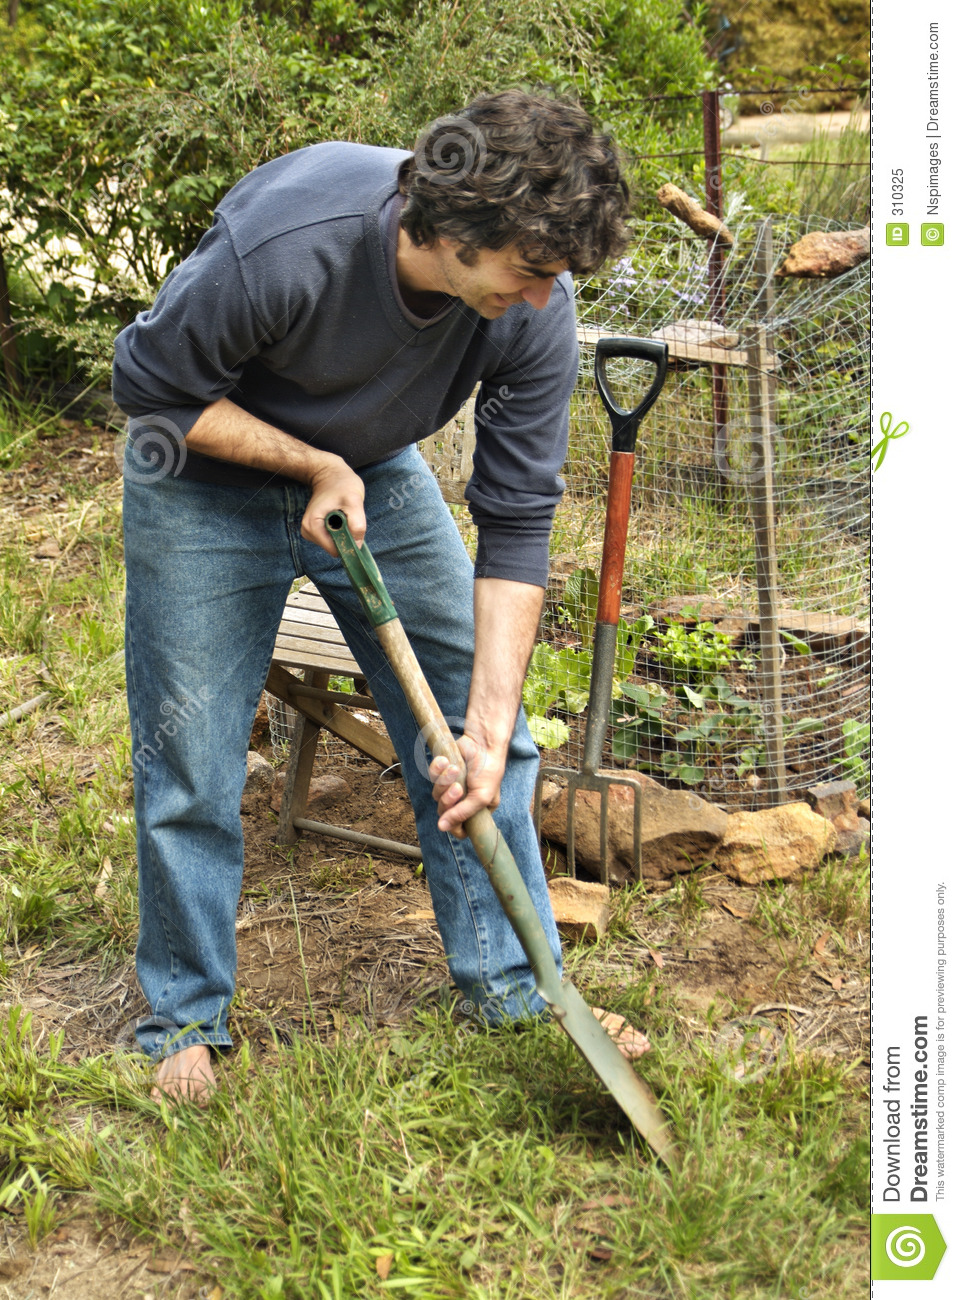 Man in vegetable patch